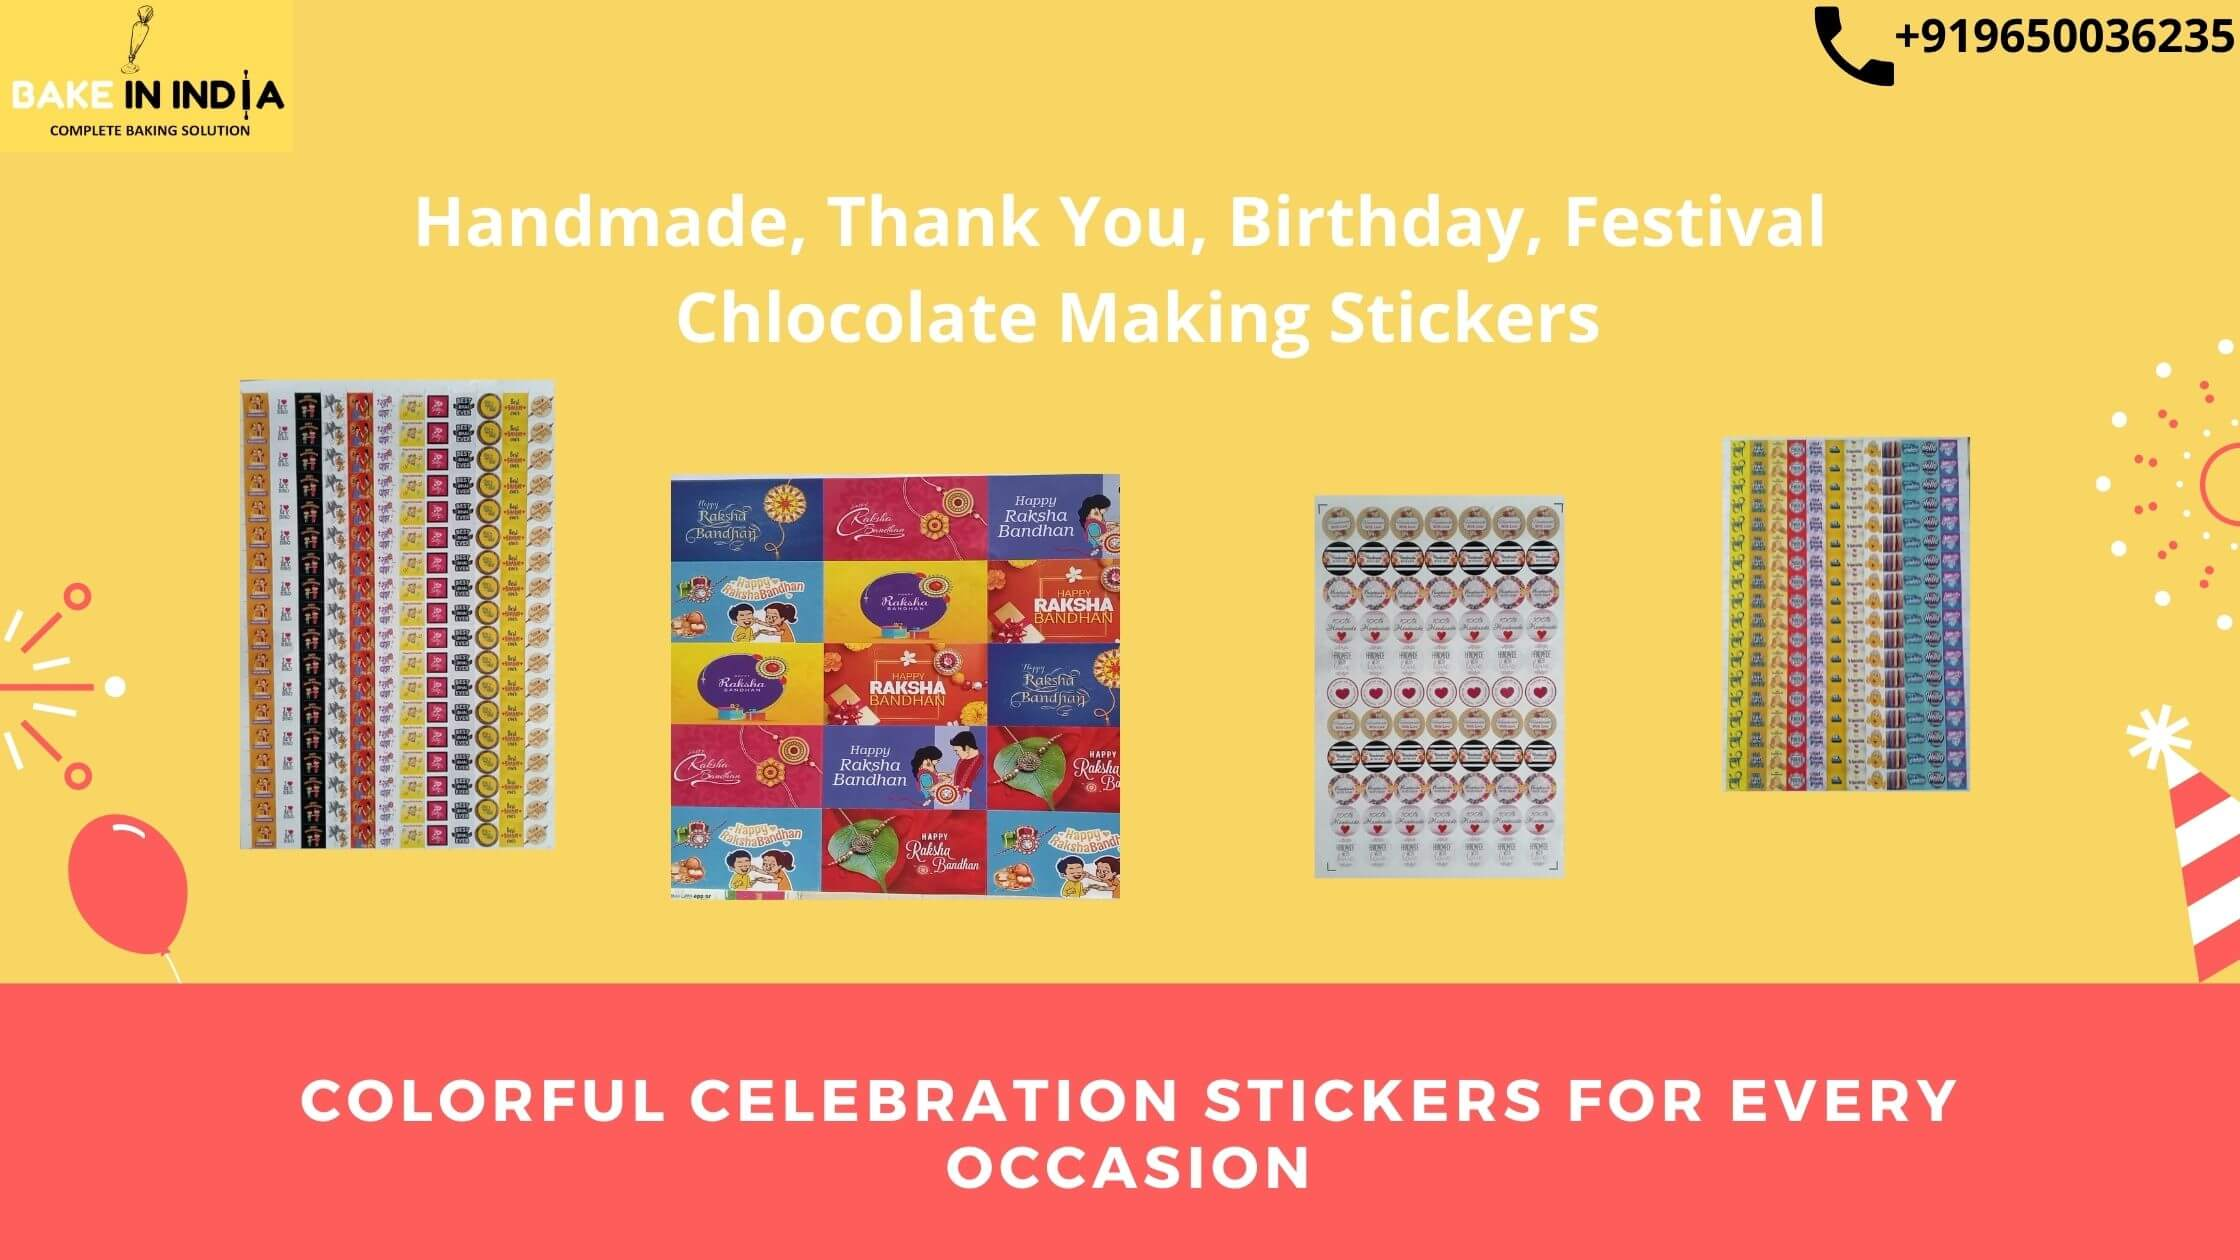 Colorful Celebration Stickers For Every Occasion